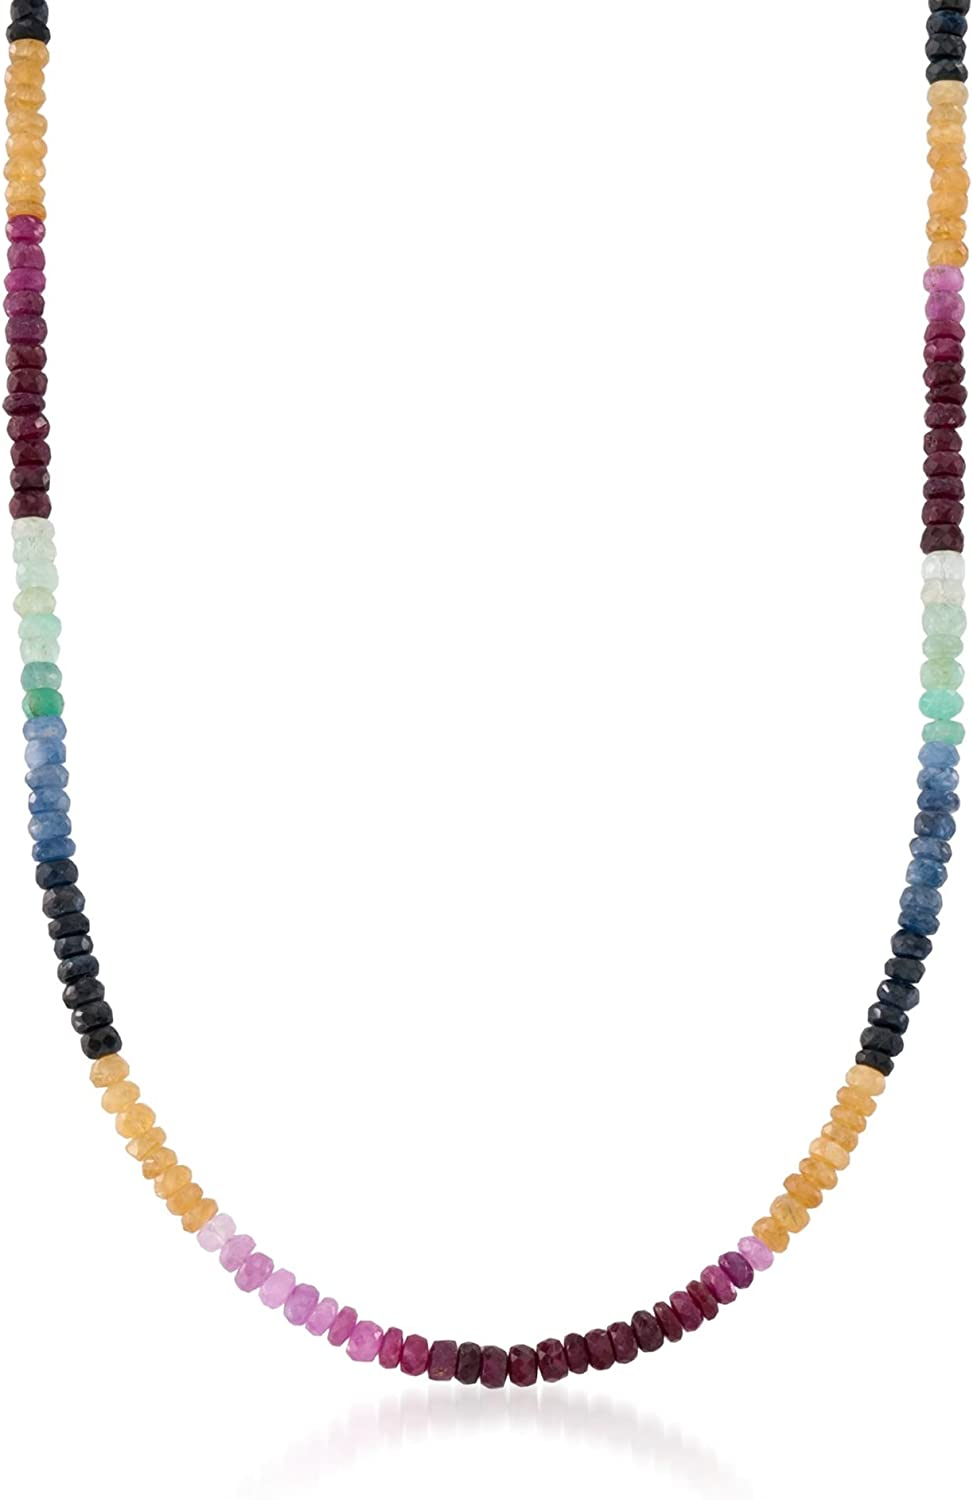 Ross-Simons Clearance SALE Limited time 100.00 ct. t.w. Necklace Bead Sapphire Multicolored Max 77% OFF